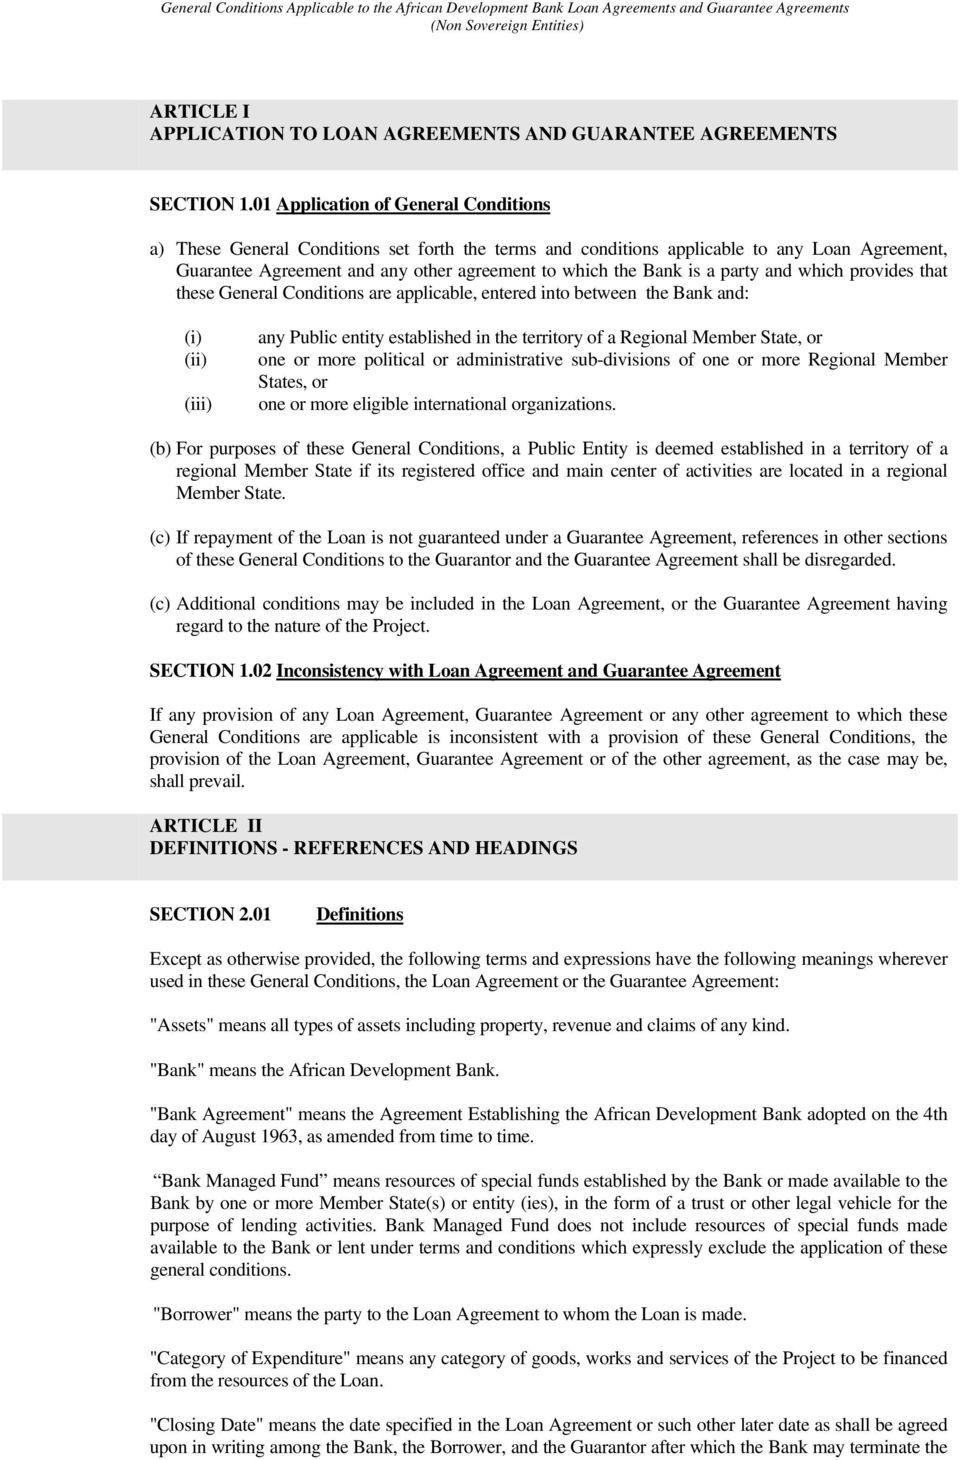 General Conditions Applicable to the African Development Bank Loan